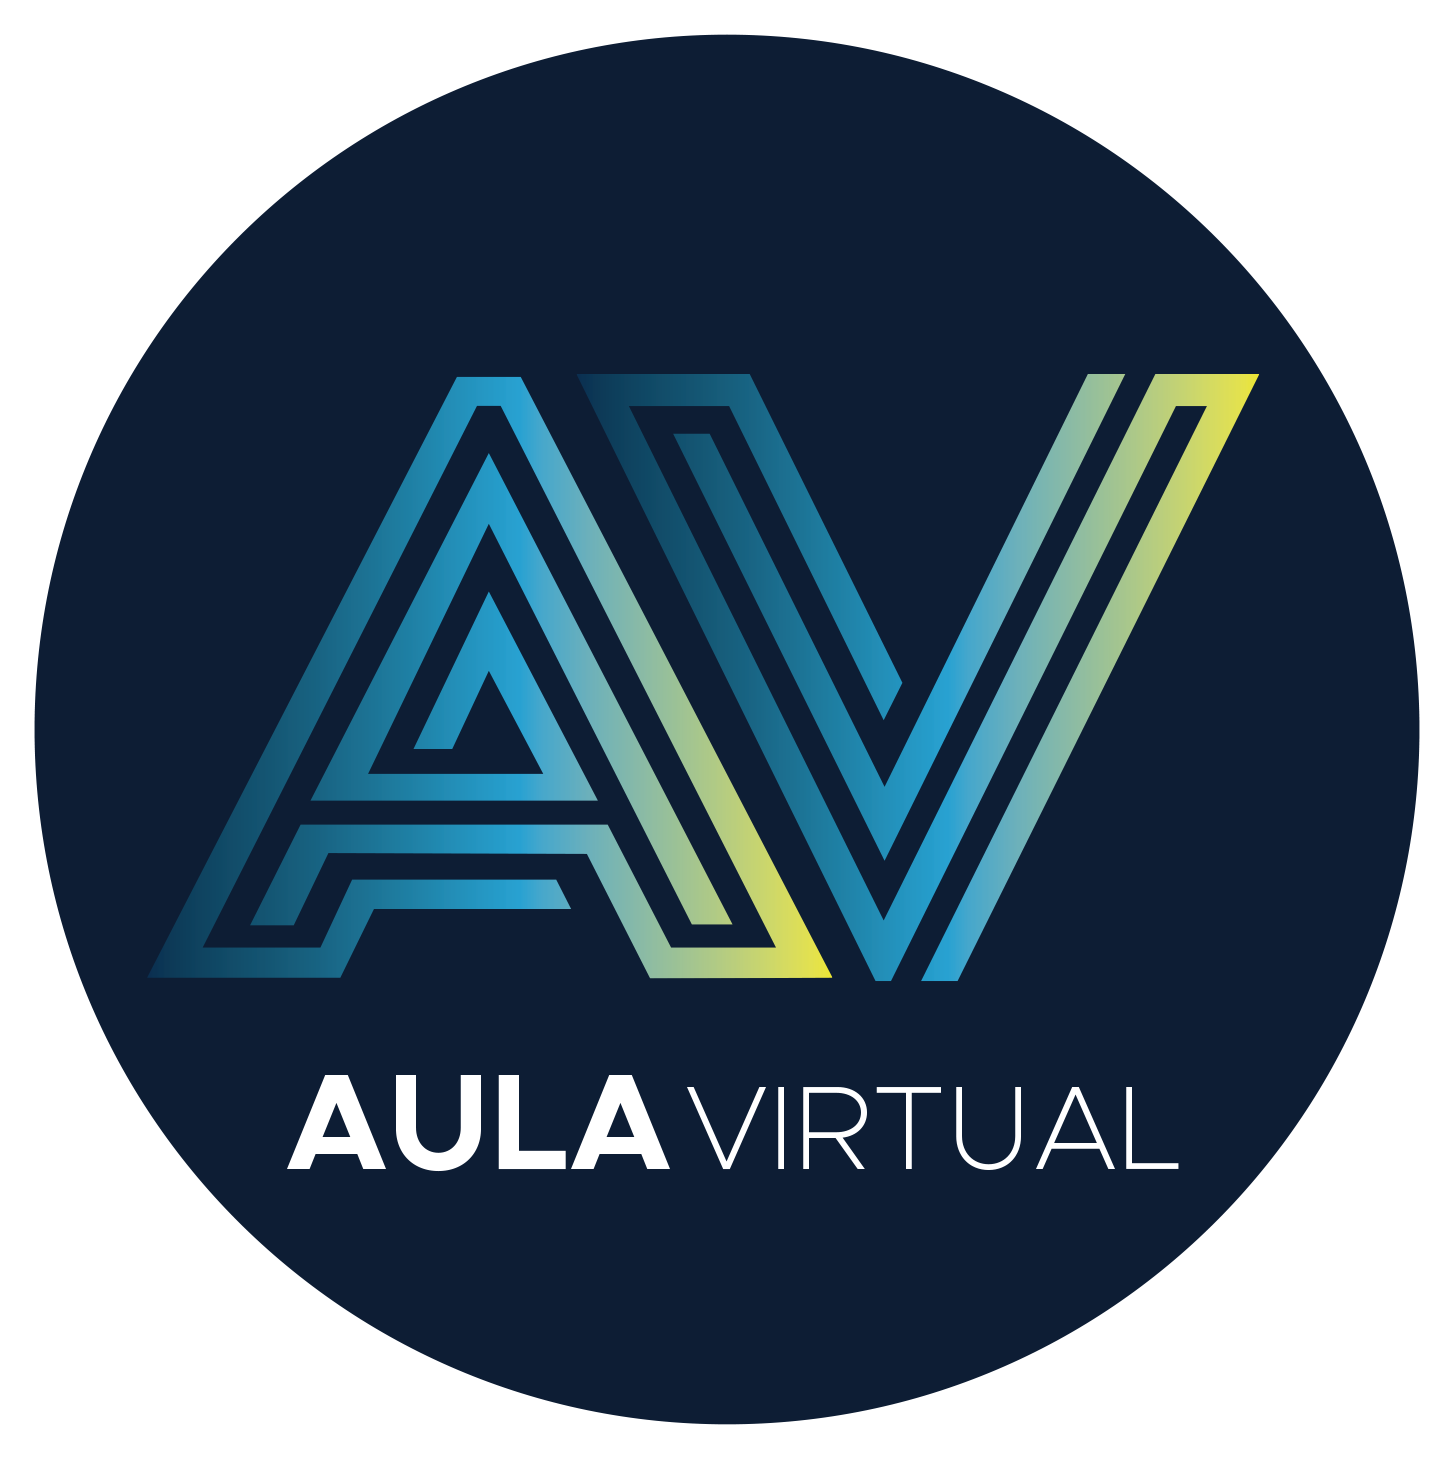 Aula Virtual Rauda Global